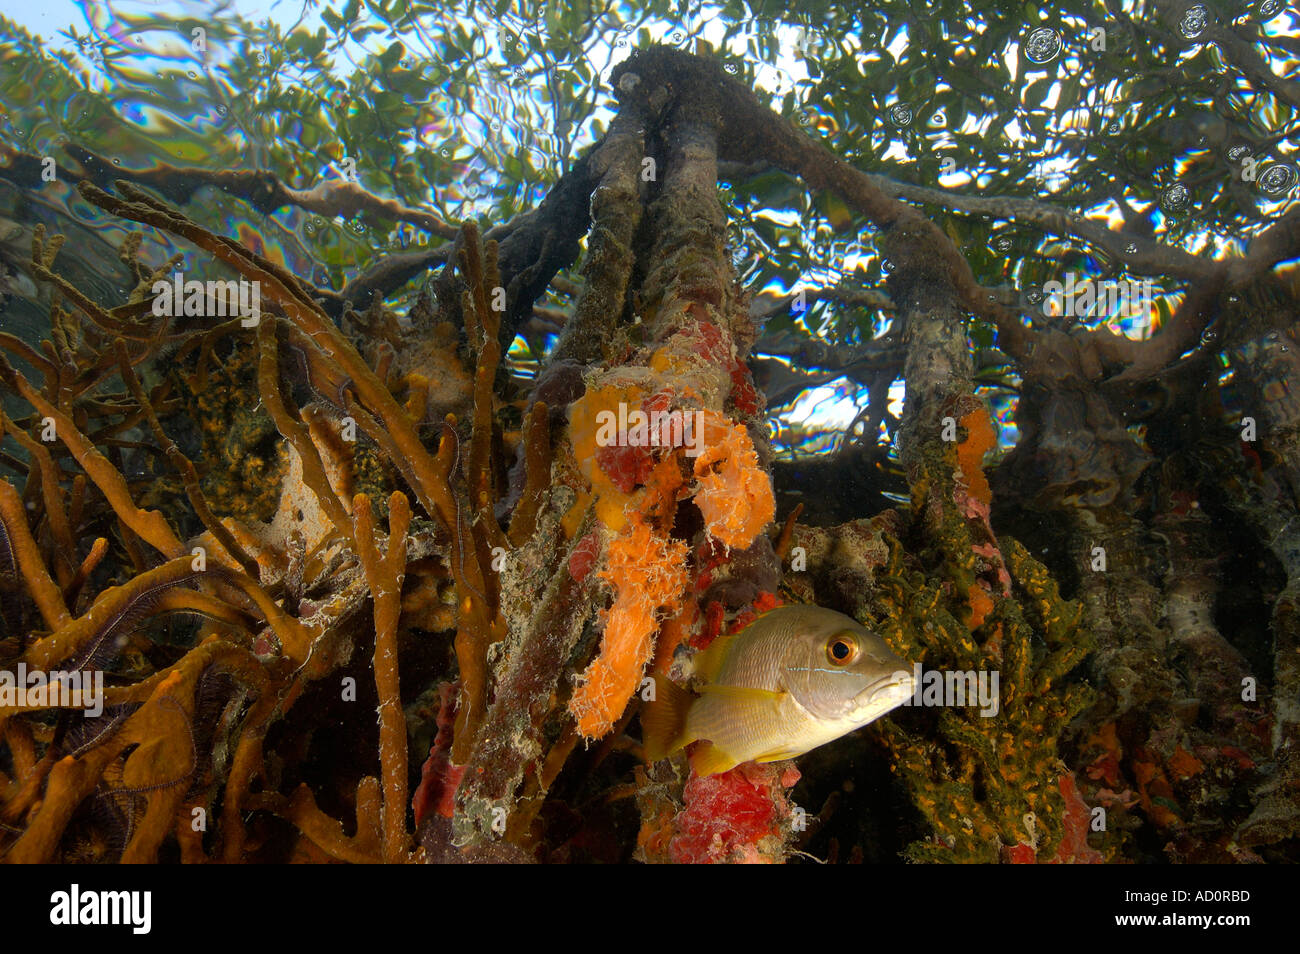 Underwater scene of mangrove roots Tunicate Cove Belize - Stock Image